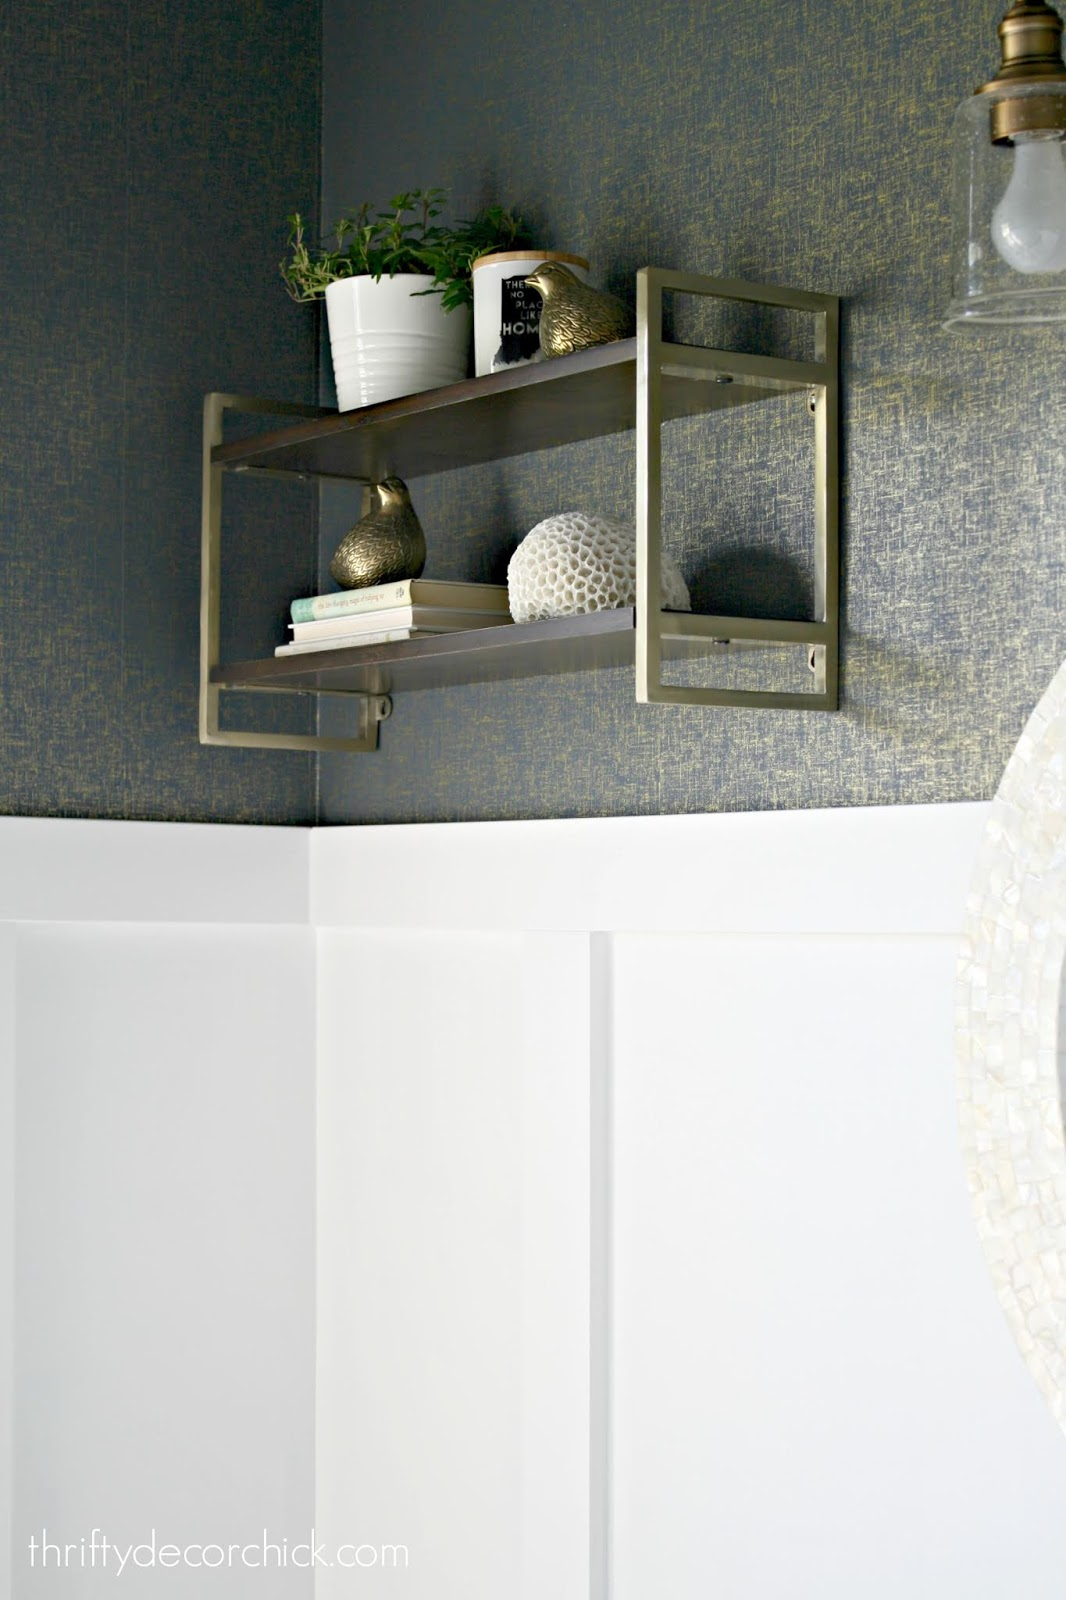 Wood and brass shelves above toilet